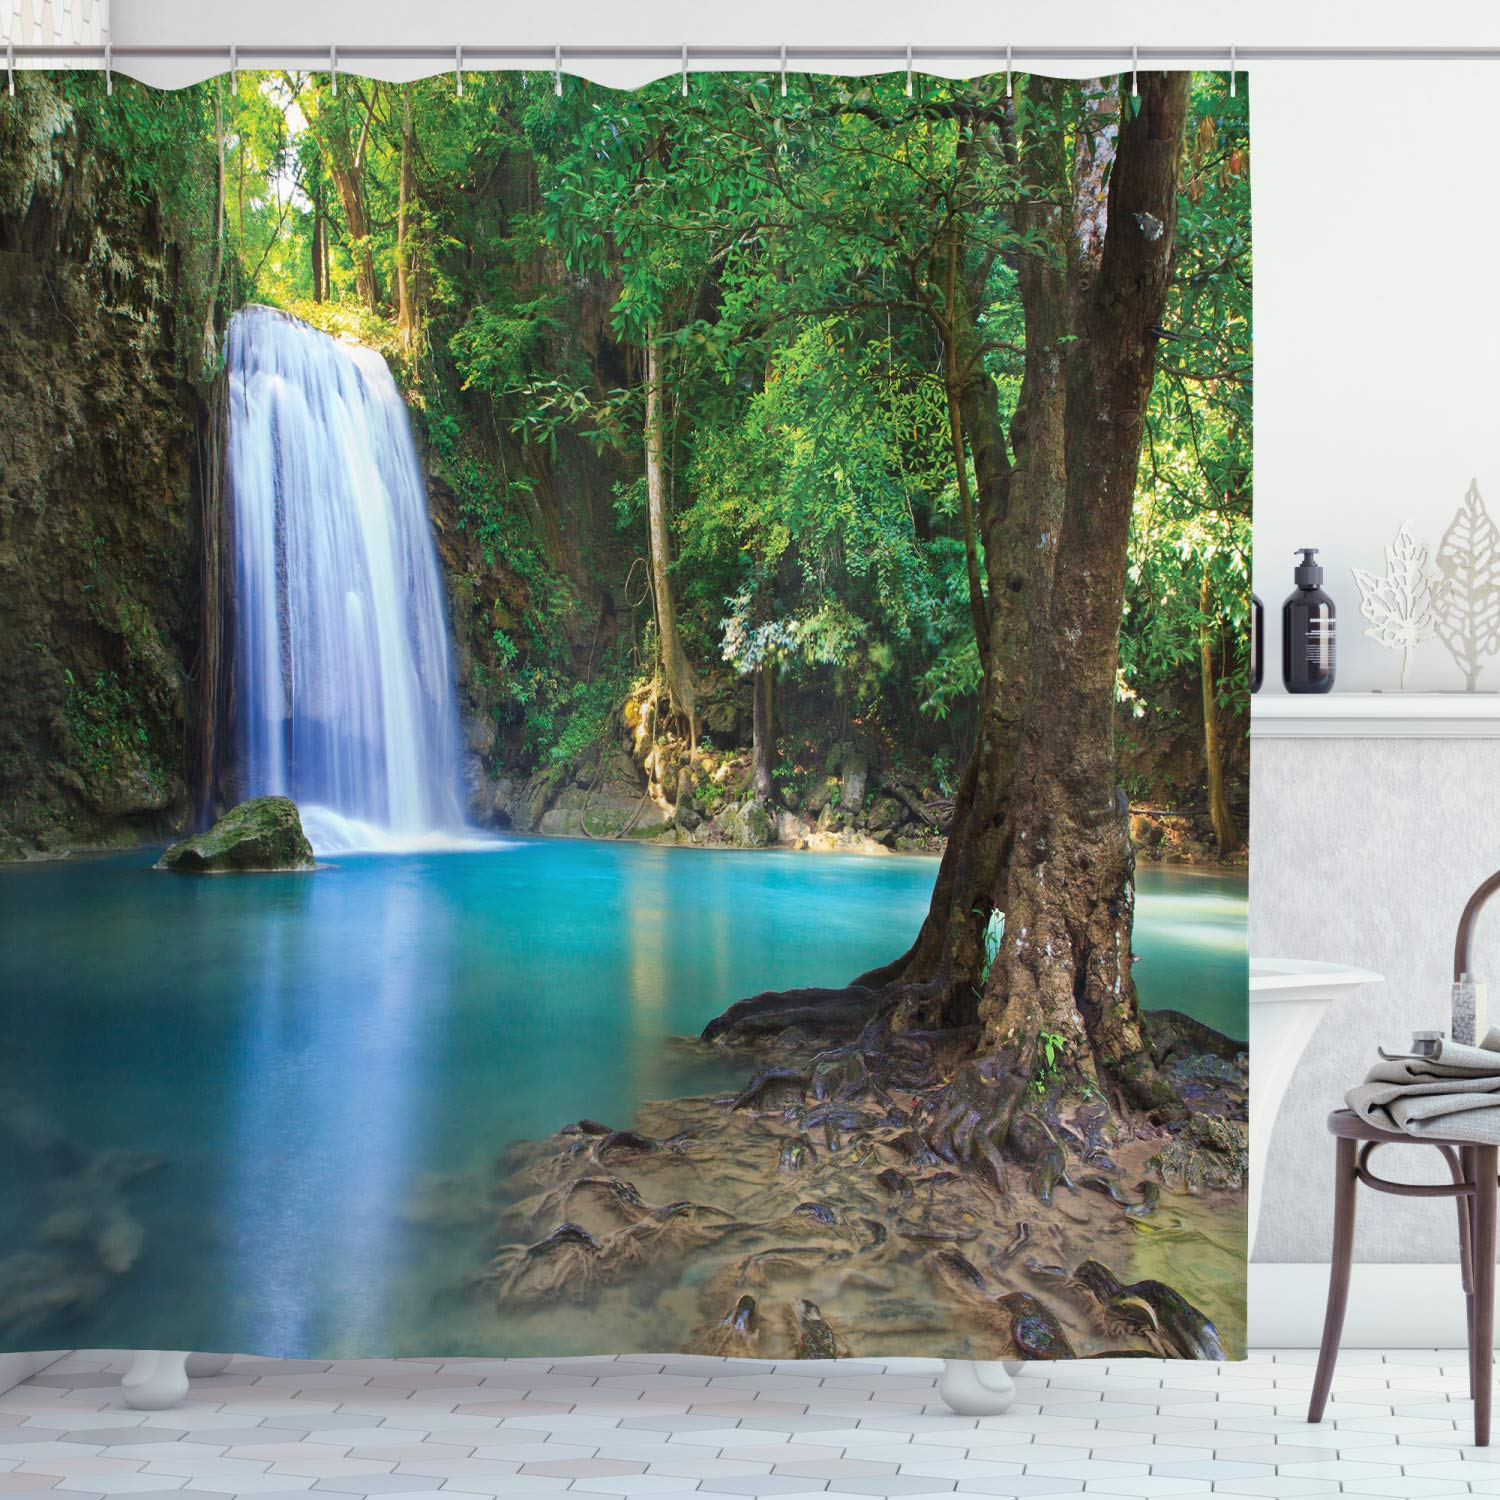 """Ambesonne Woodland Shower Curtain, Waterfall Asia Thailand Jungle Tropic Plants Trees Tourist Attraction, Cloth Fabric Bathroom Decor Set with Hooks, 70"""" Long, Turquoise Blue"""